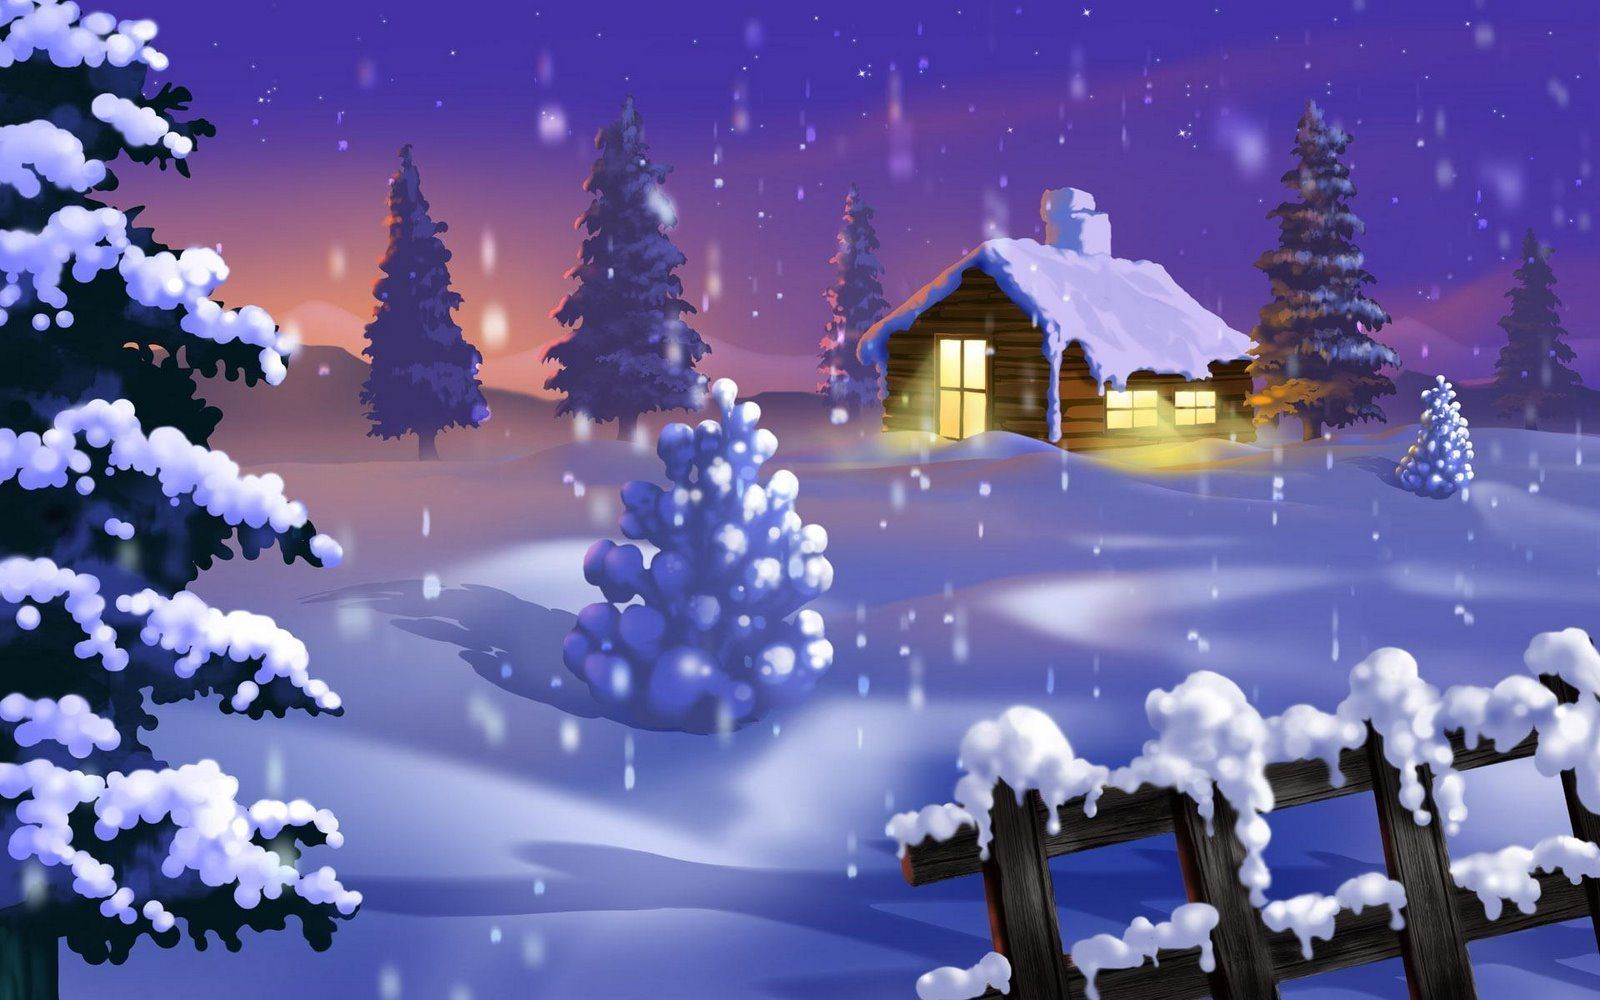 20 hd christmas wallpapers for desktop free - download here.